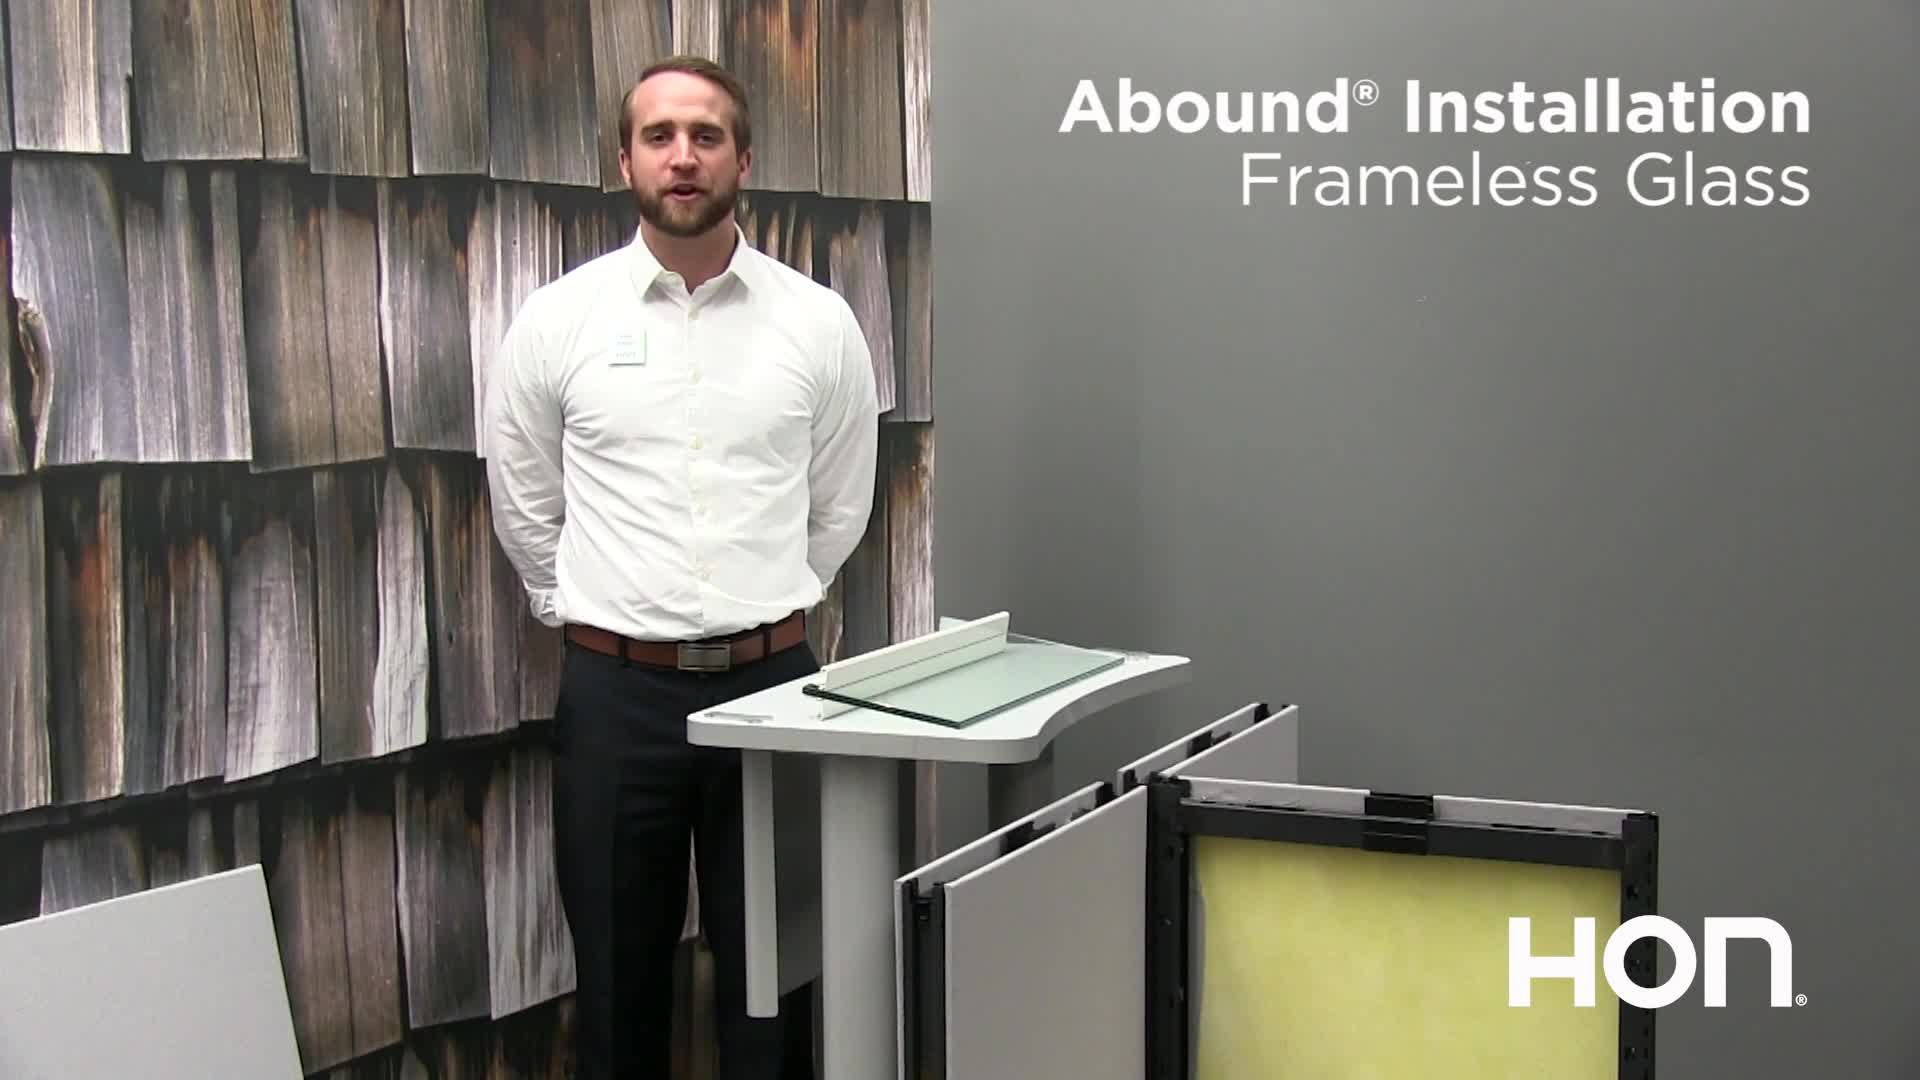 Abound Tips and Tricks - Installation Frameless Glass video link